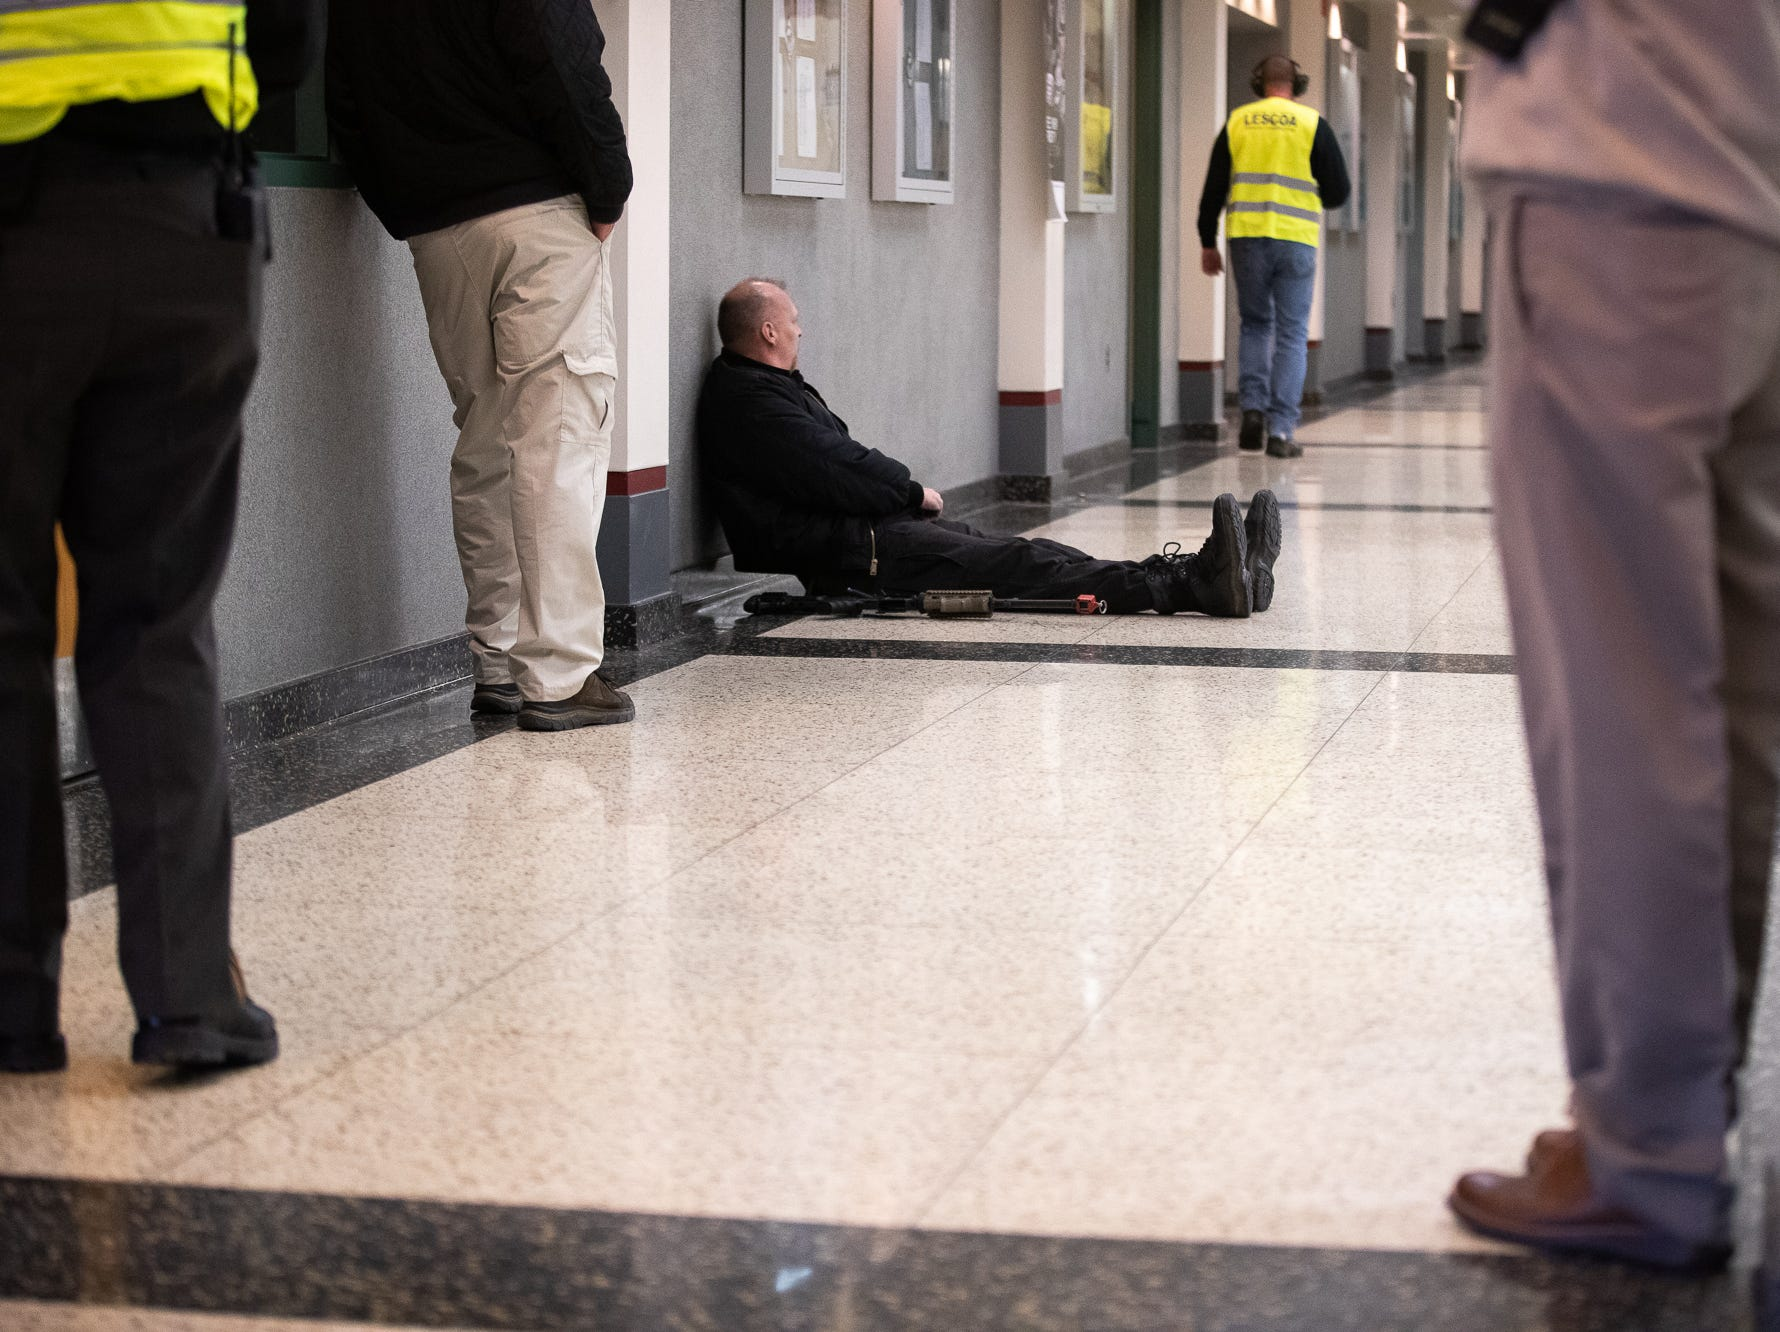 A man portraying an active shooter sits down after being taken out during an active shooter drill at South Western High School, Monday, Jan. 21, 2019, in Penn Township. The drill simulated multiple scenarios involving an active shooter, allowing school security and local law enforcement agencies a hands-on opportunity to drill on engaging an active shooter while also giving school staff experience with how real world scenarios could unfold.